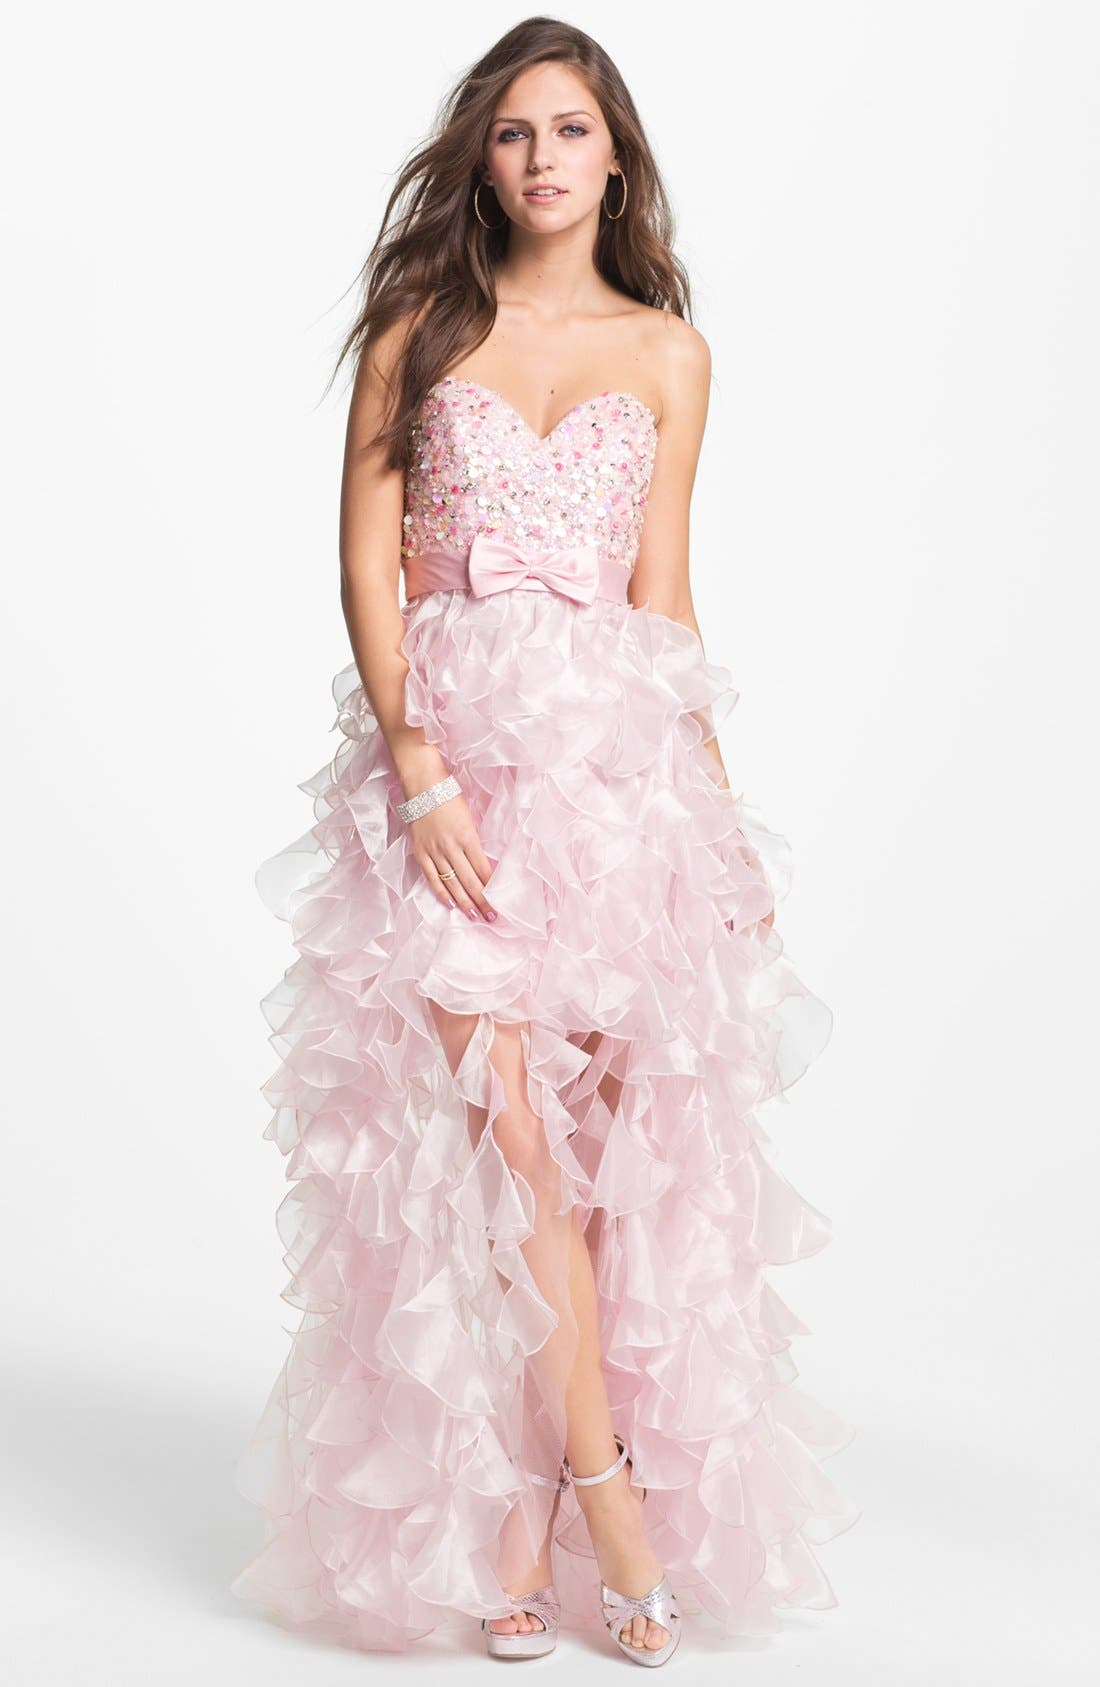 Alternate Image 1 Selected - Sherri Hill 'Corkscrew' Embellished Ruffled Chiffon Dress